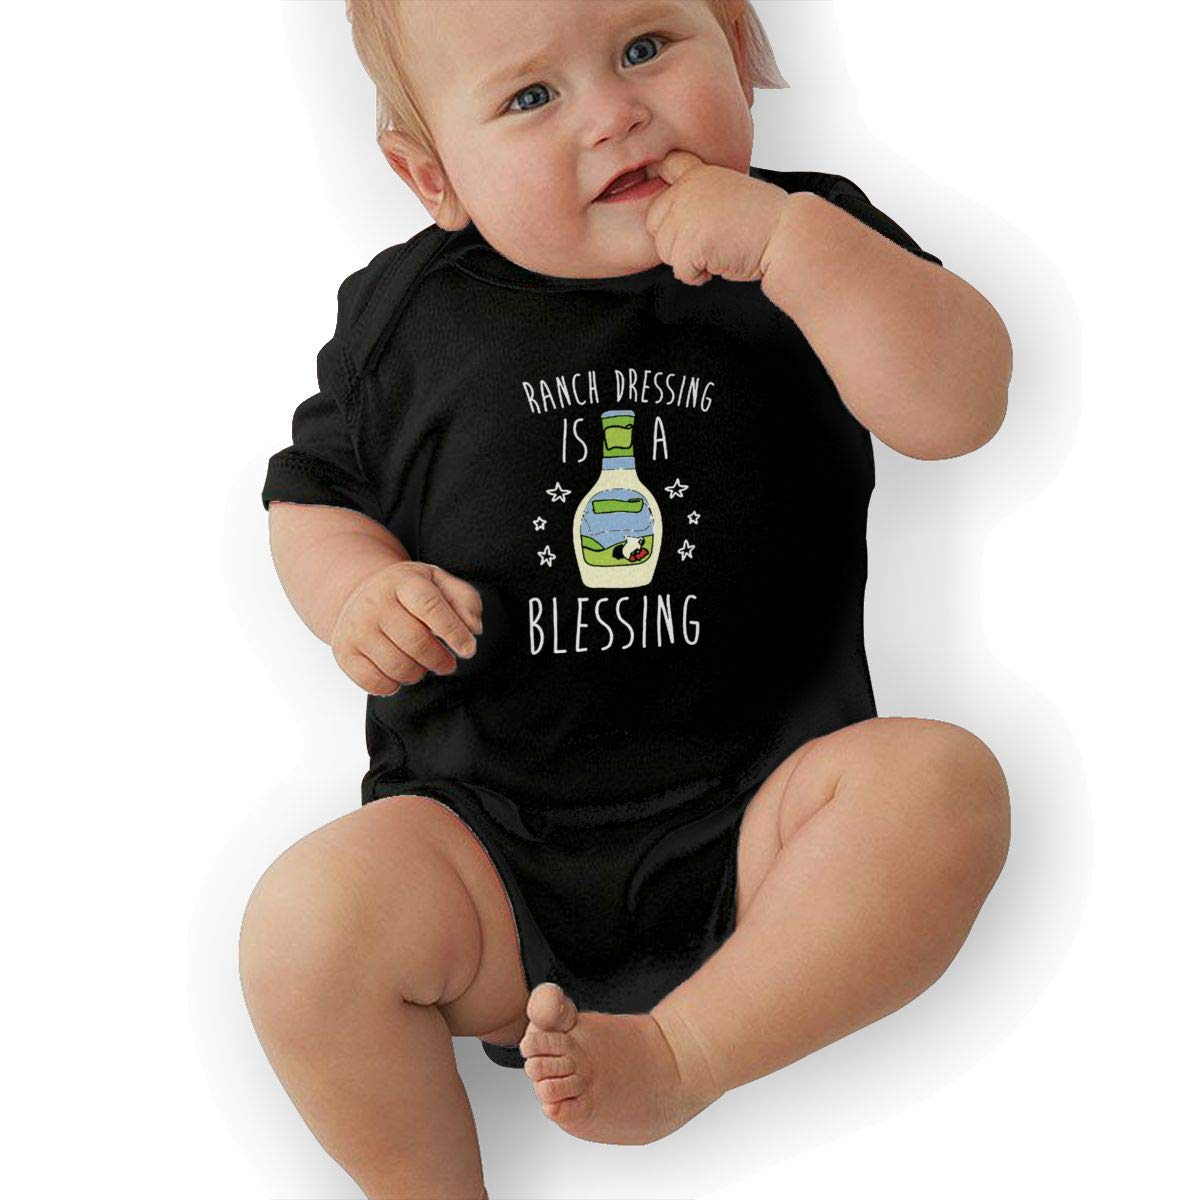 LANBRELLA Ranch Dressing is A Blessing Infant Cotton Short Sleeve Baby Rompers Bodysuits